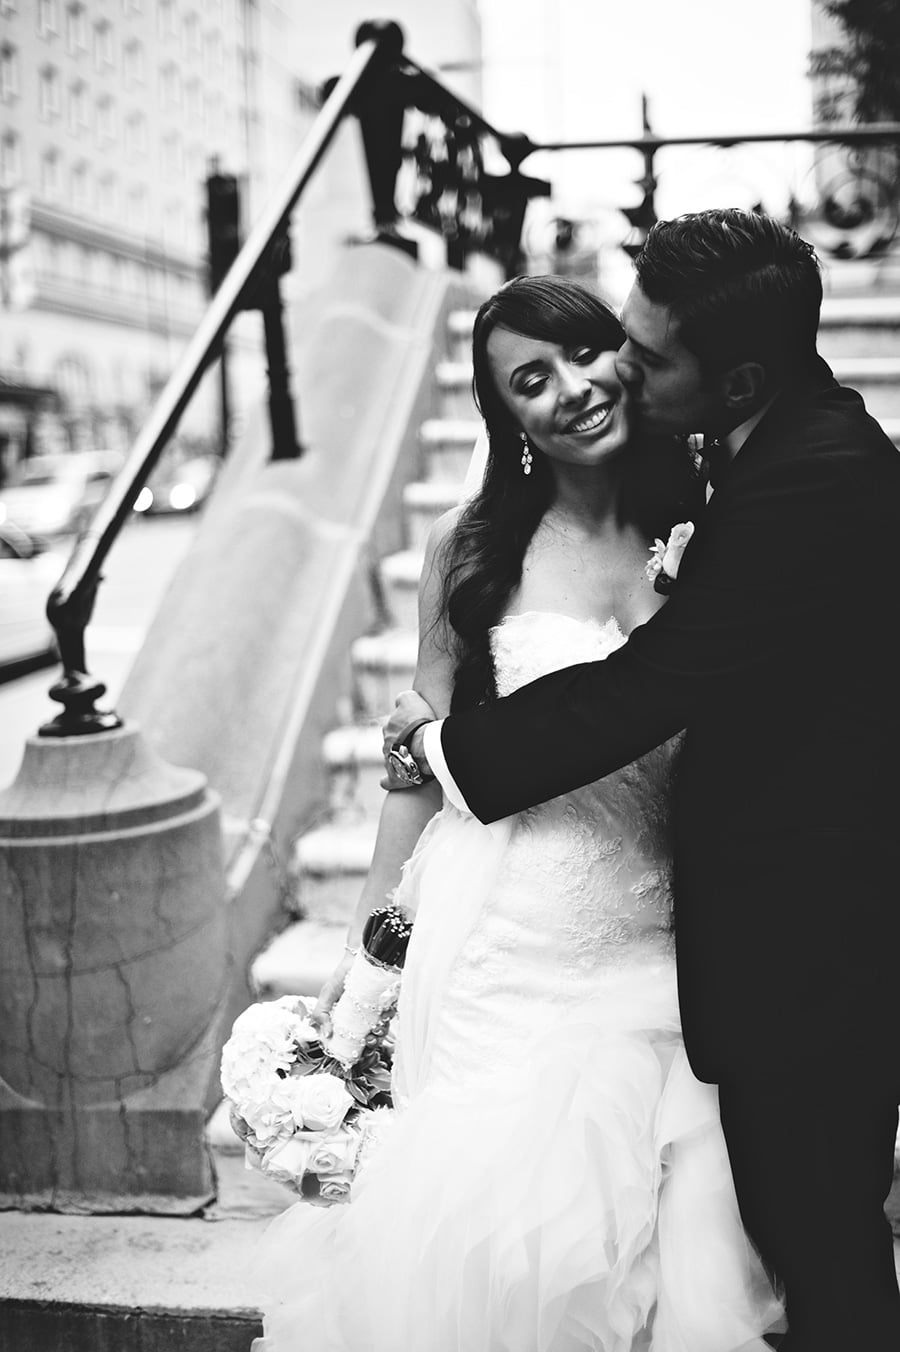 Ristorante Beatrice Montreal Toronto wedding Photographer